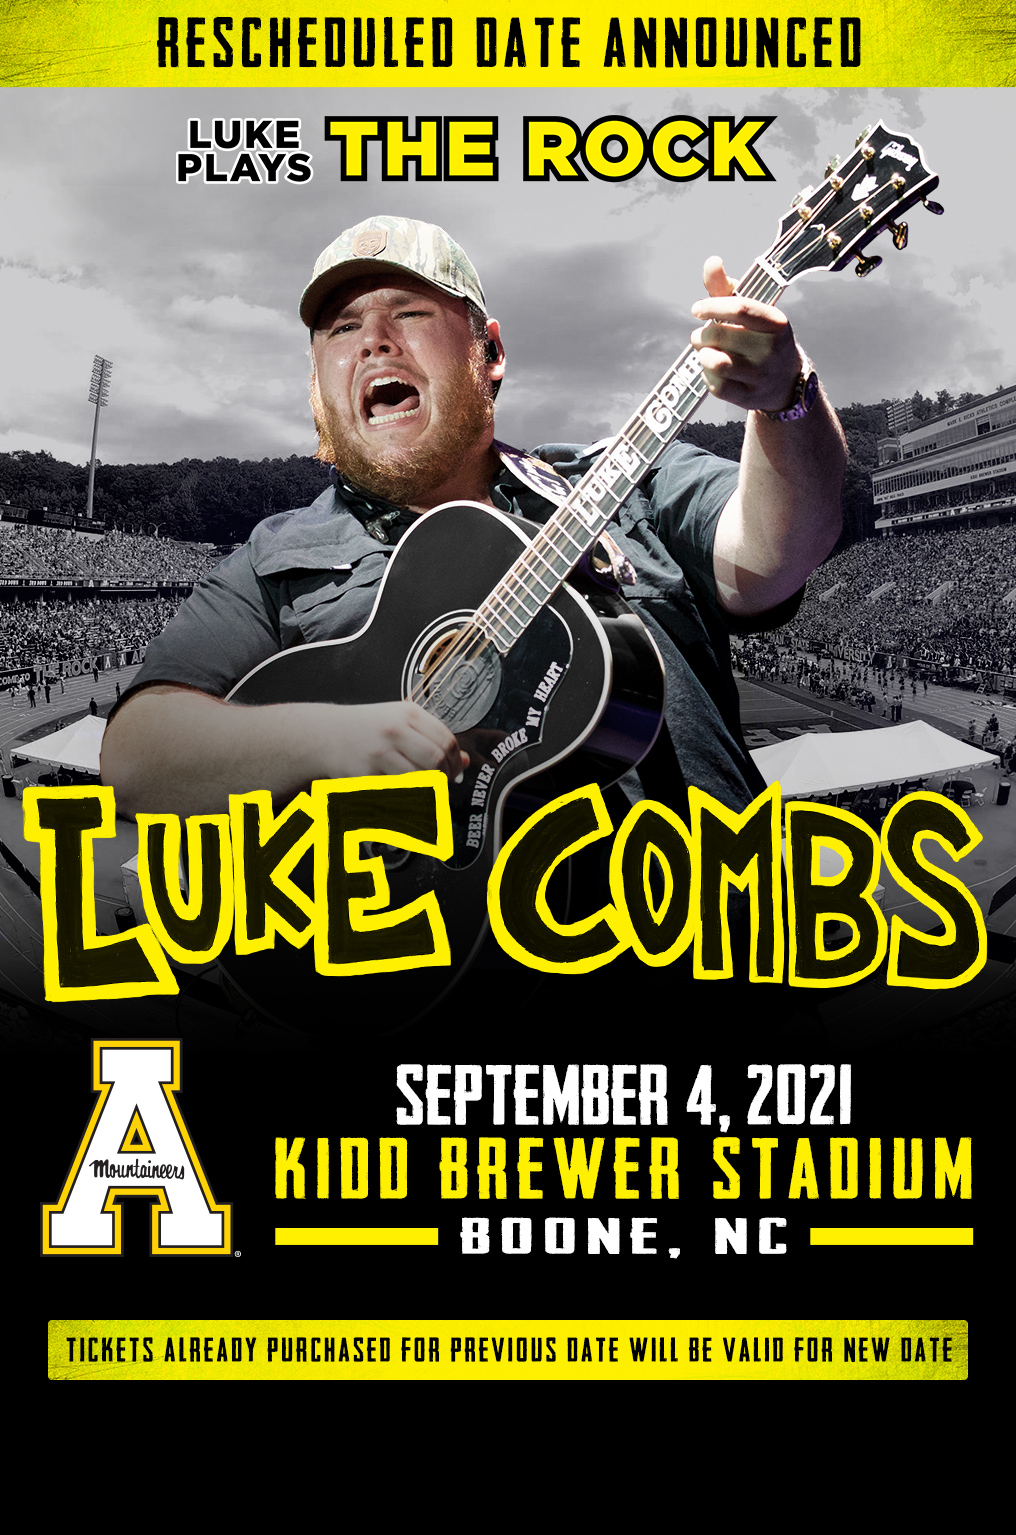 LUKECOMBS_AppState_1016x1535